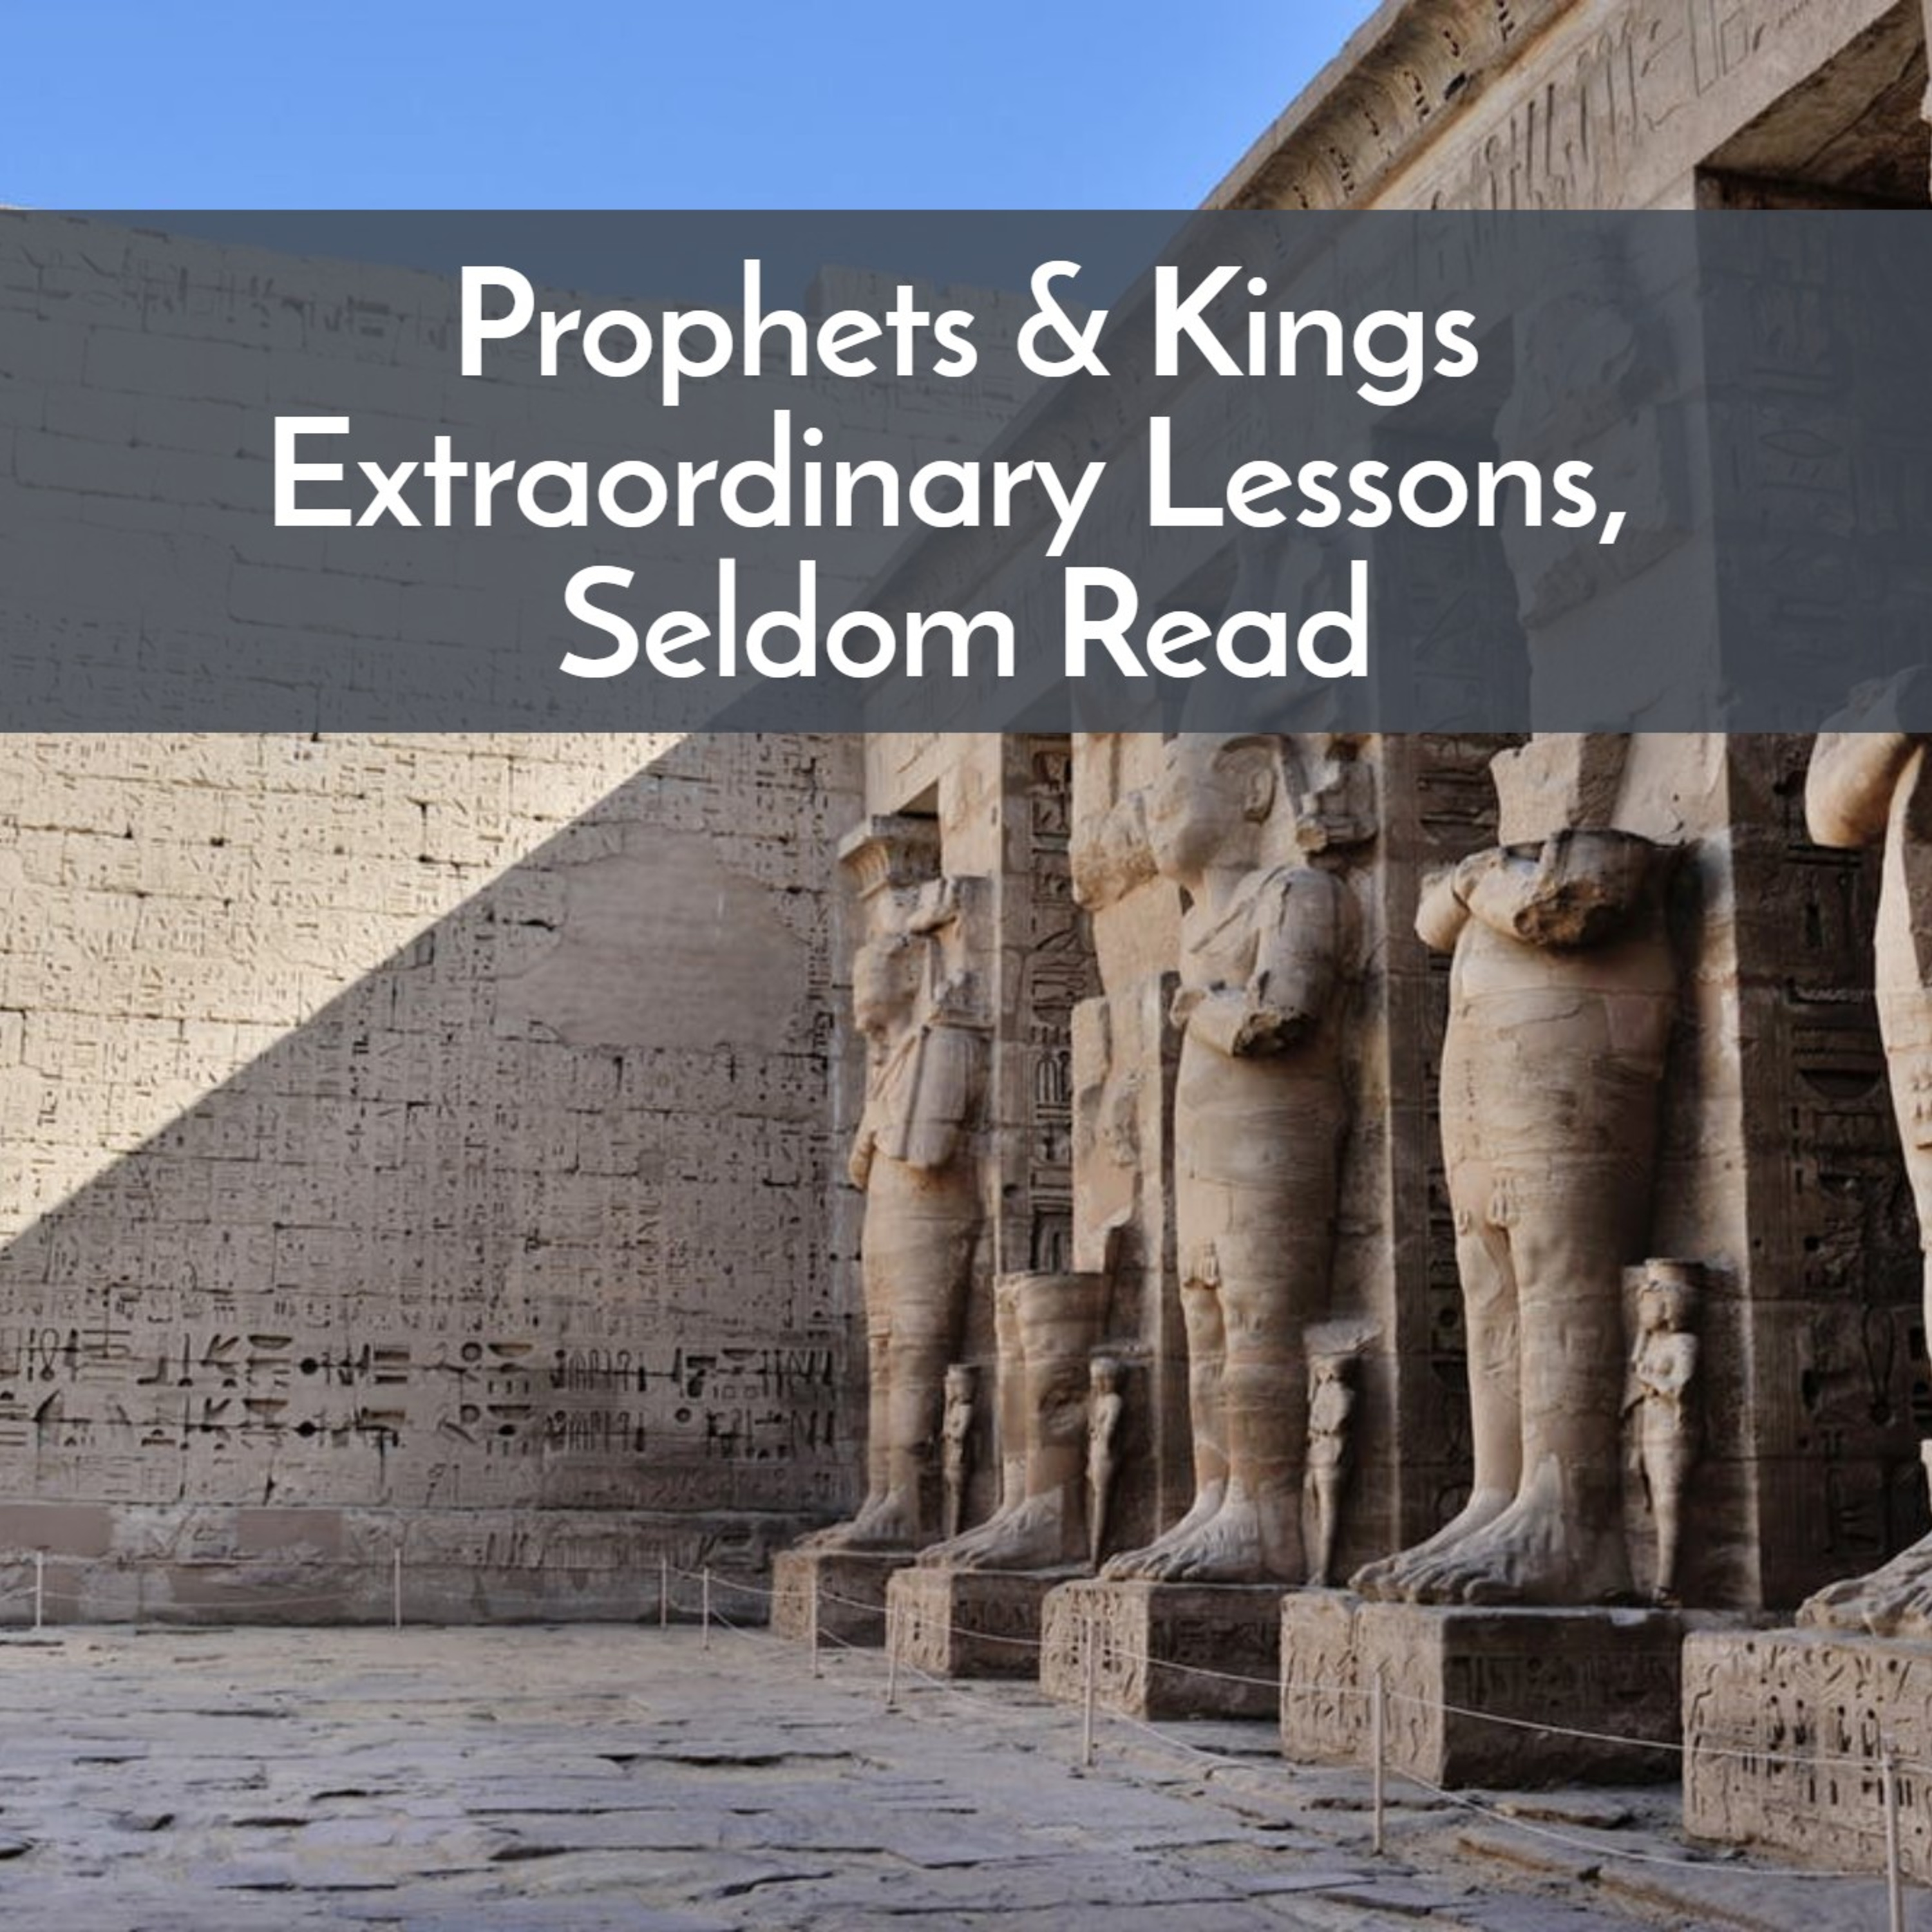 #38 Prophets & King, Extraordinary Lessons, Seldom Read